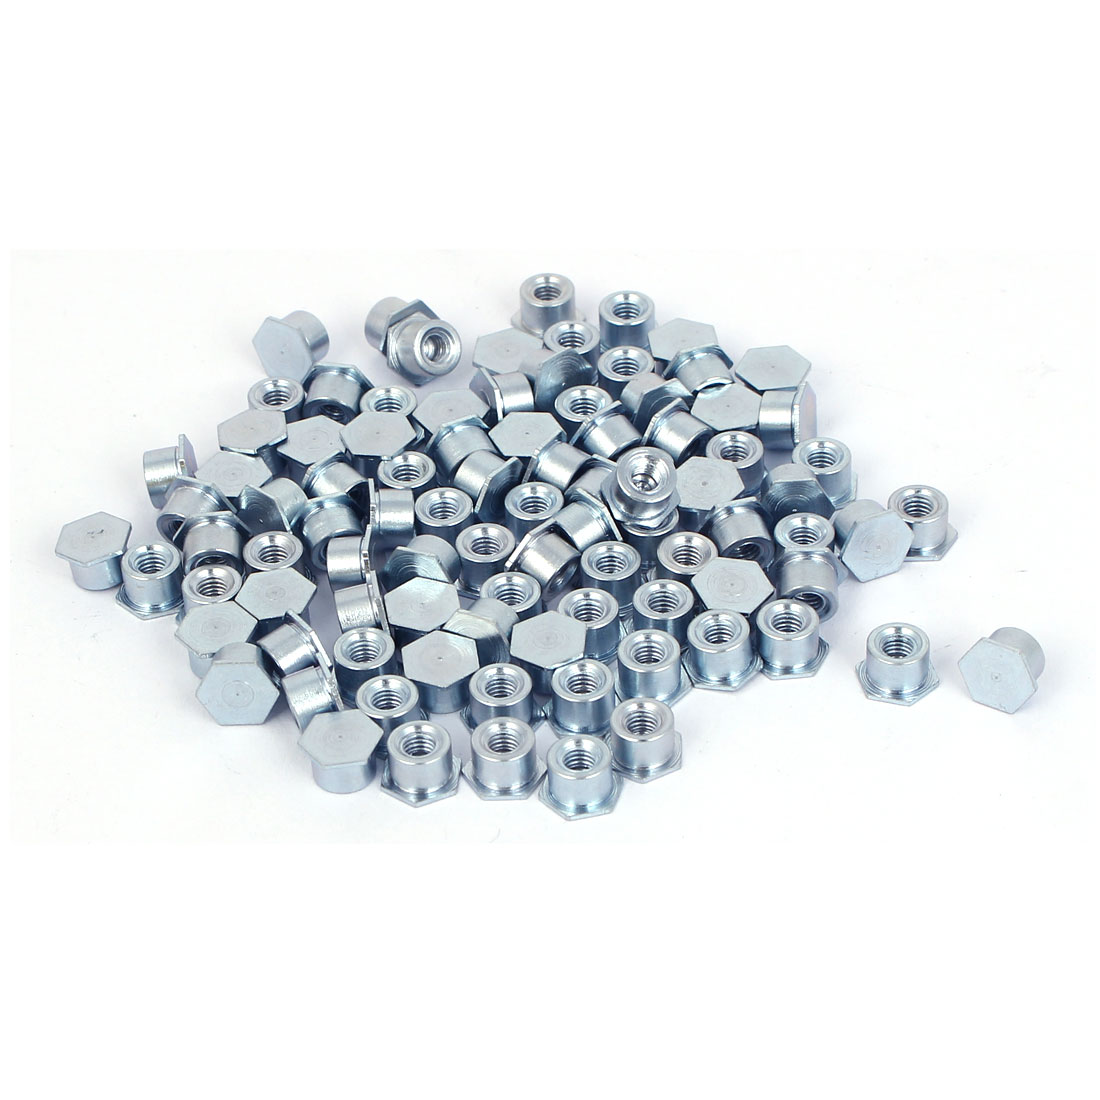 Carbon Steel Zinc Plated Hex Head Full Thread Self Clinching Standoff Silver Blue M3x4mm 100pcs